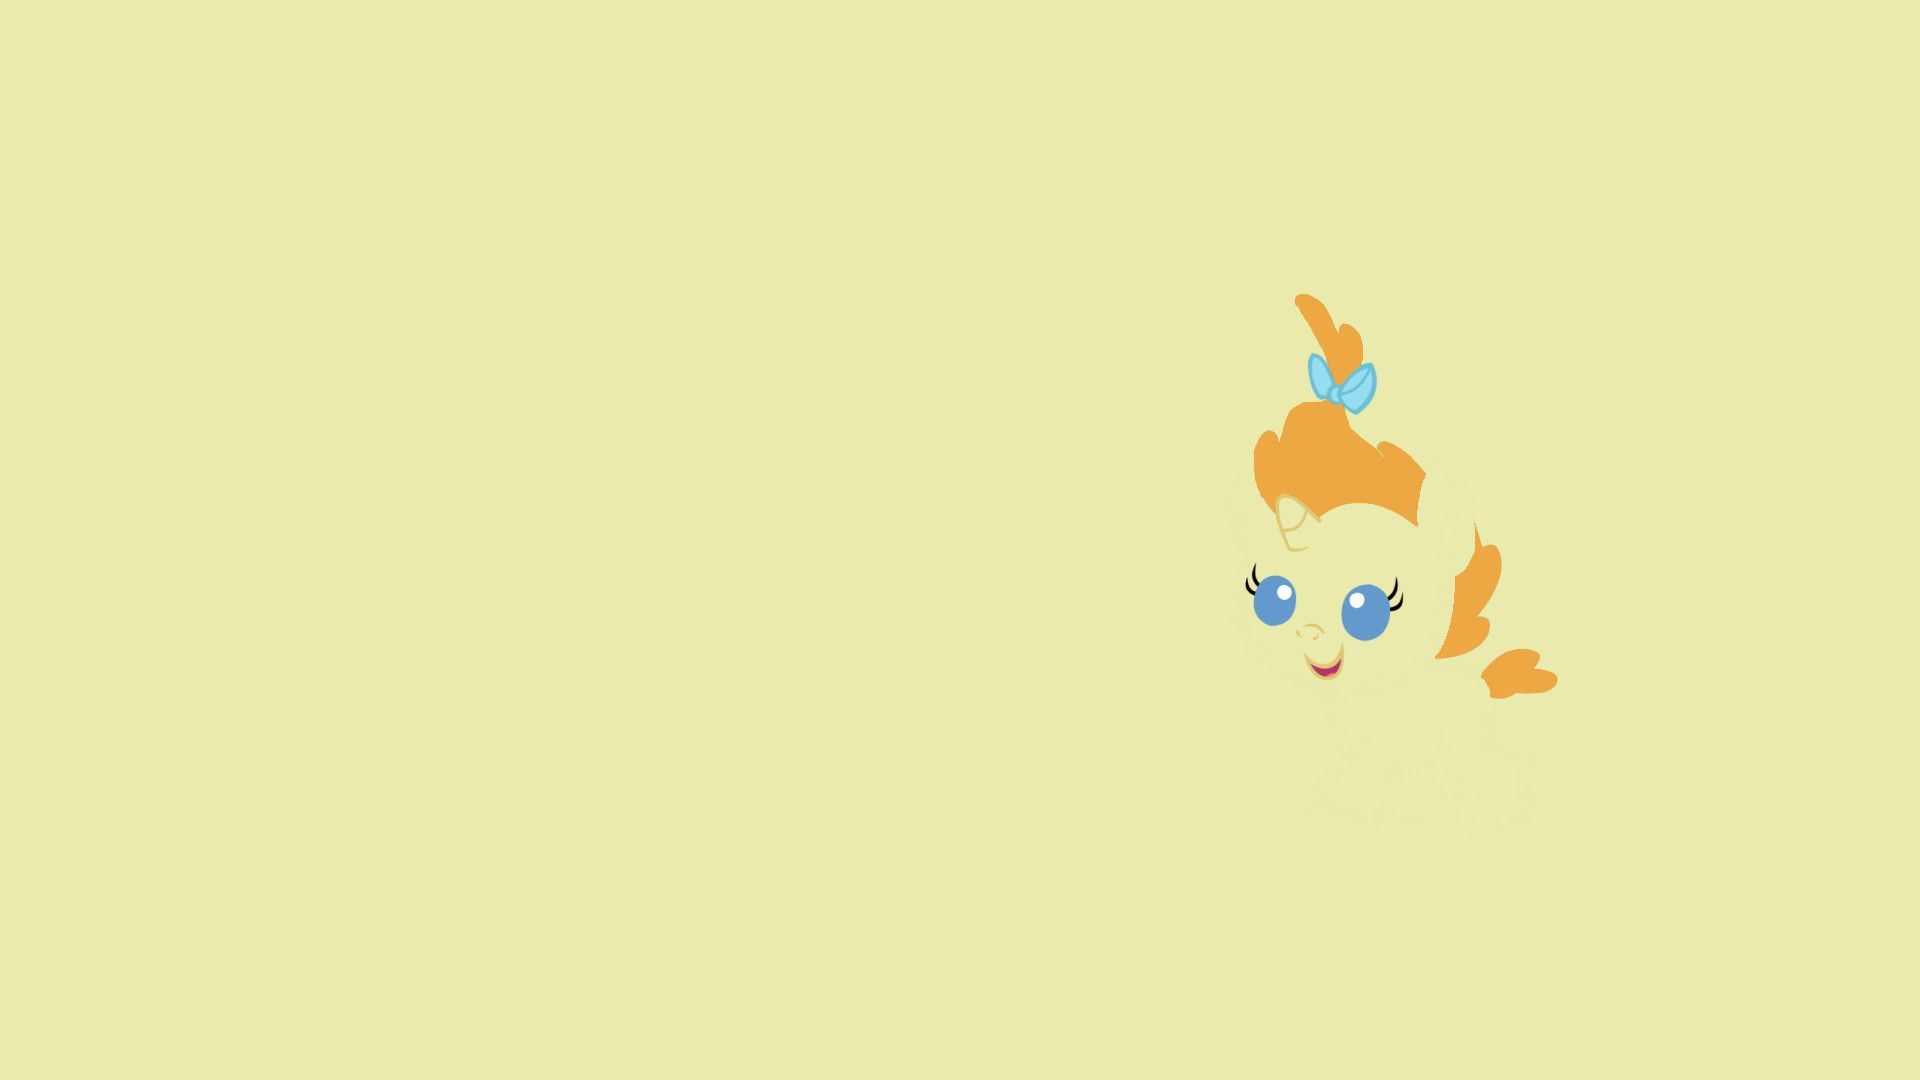 1920x1080 Disney Minimalist Wallpaper (77+ images)